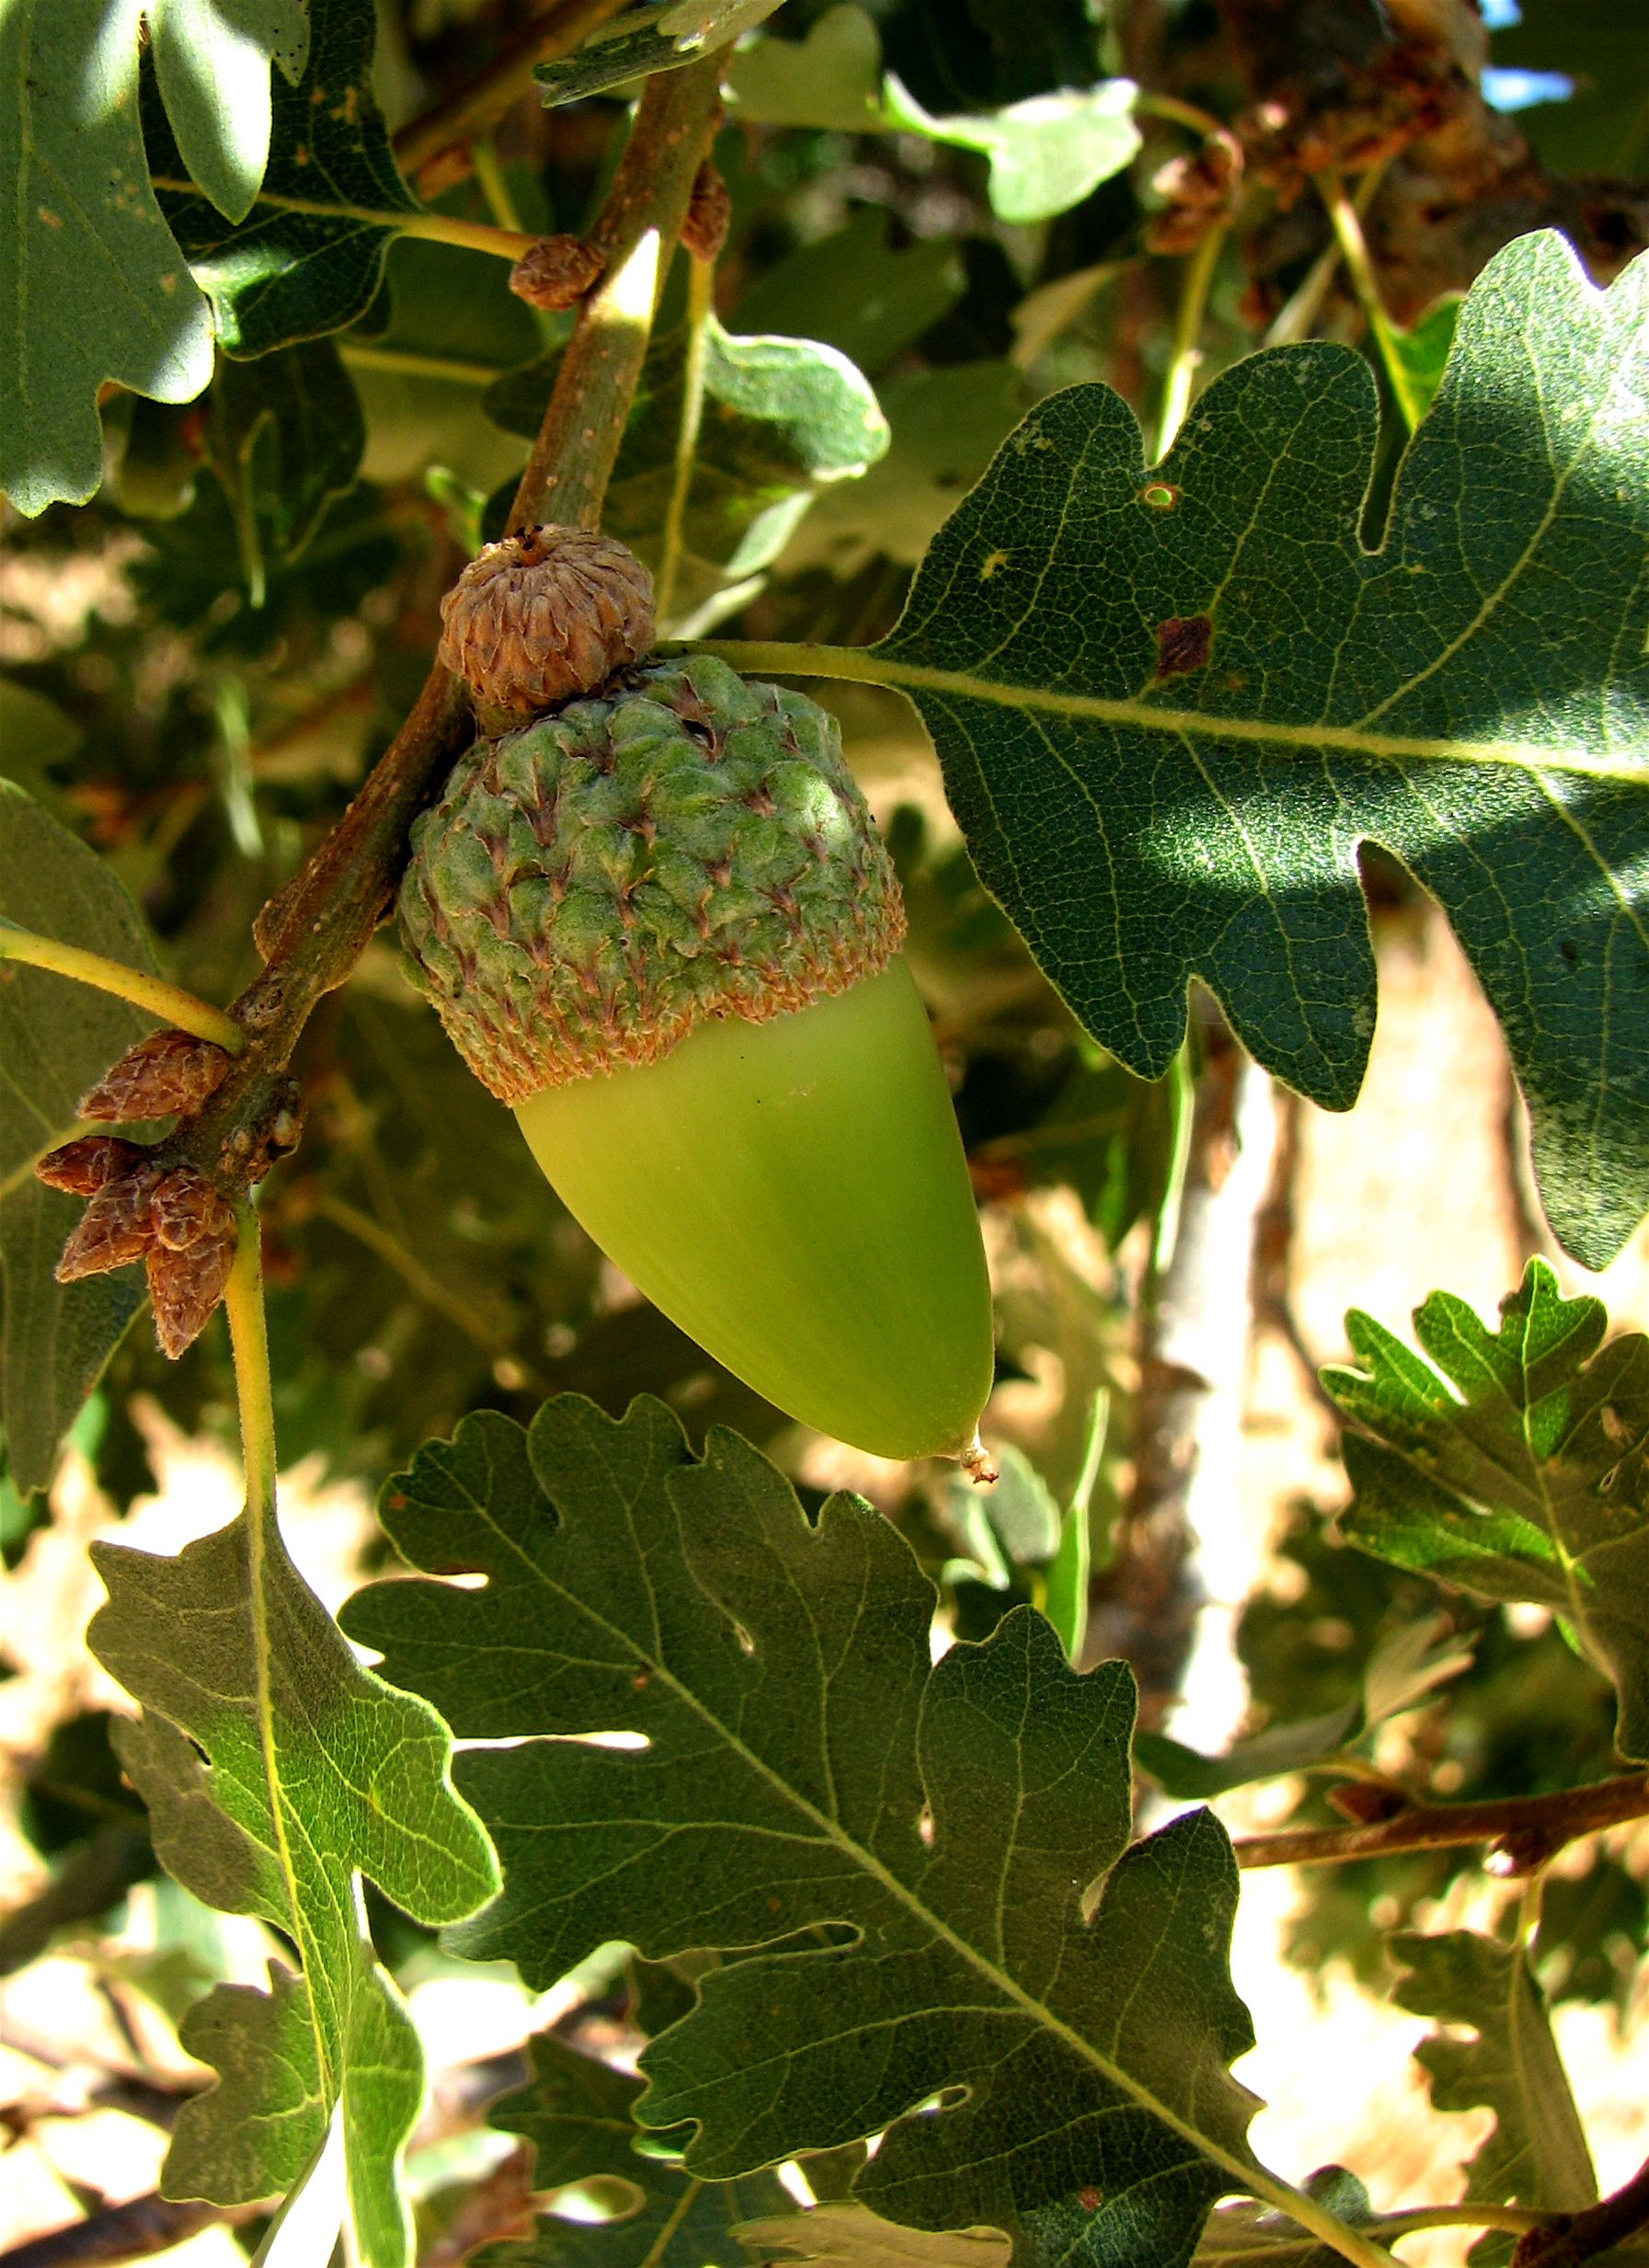 The Valley Oak Tree Acorn - Across The Continent In The State Called California, A Stately Valley Oak Tree Presides Over An Open Expanse Of Golden Summer Grasses That Gently Bow In The Afternoon Breeze